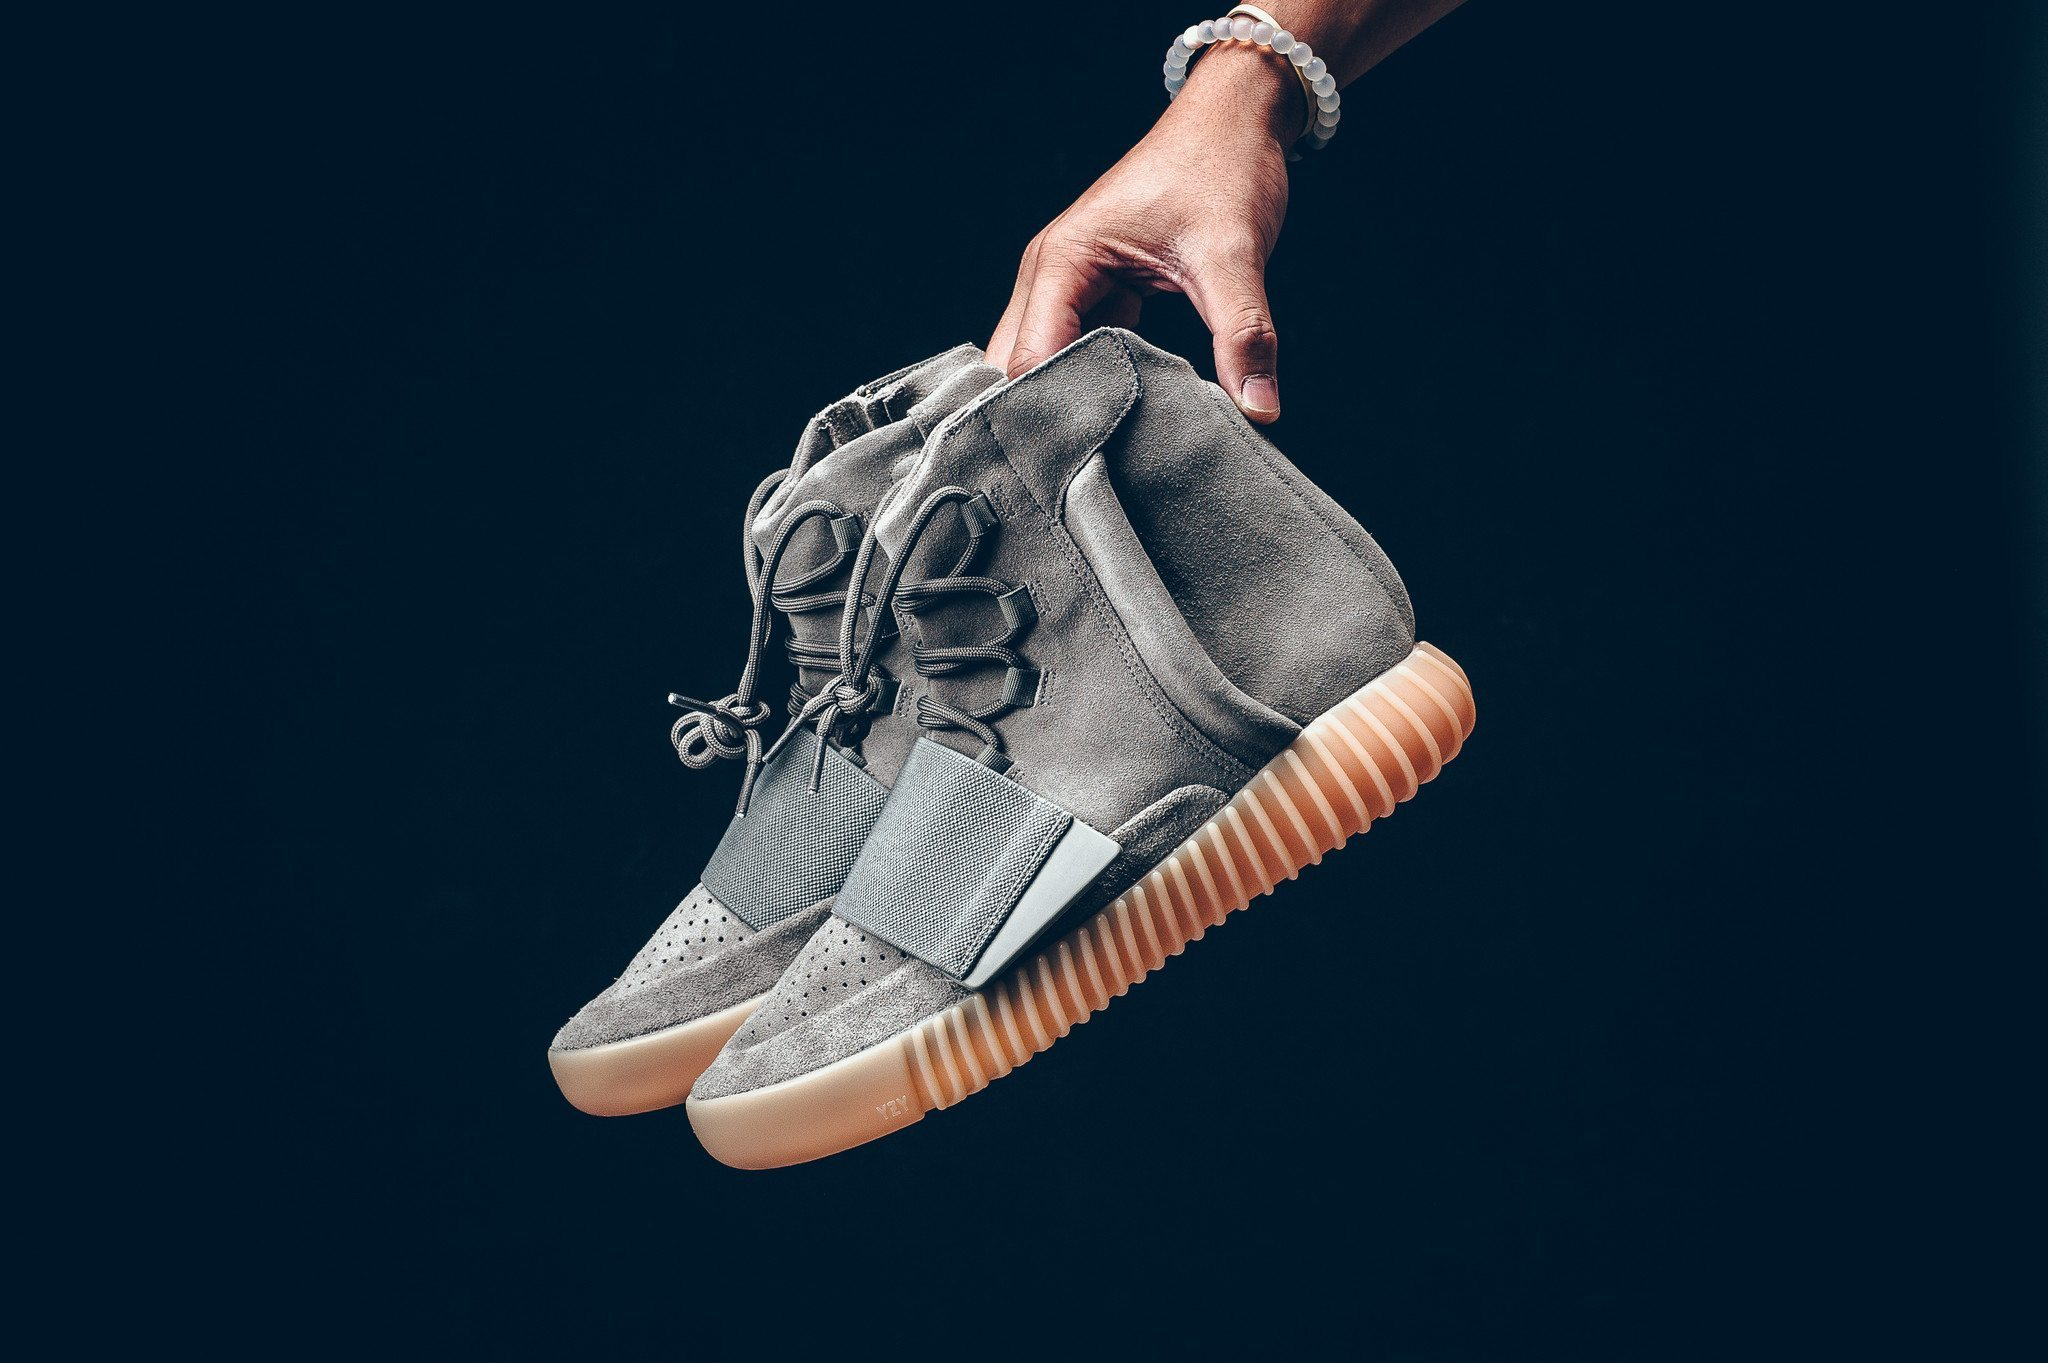 adidas Yeezy Boost 750 Light Grey 7